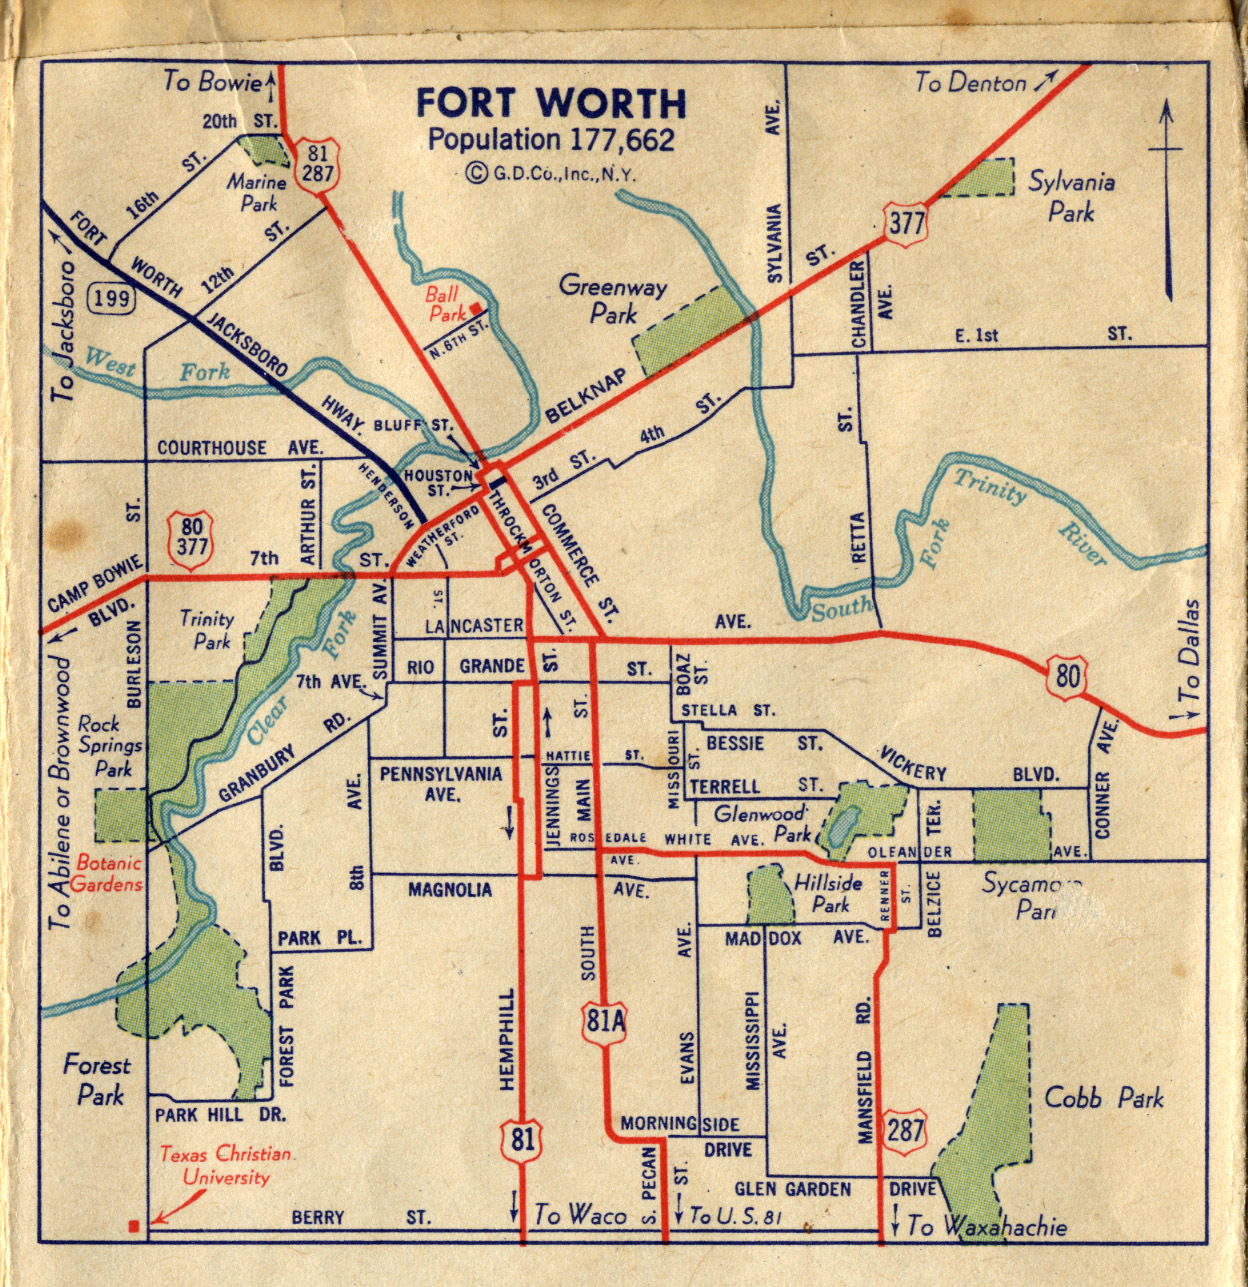 Old Highway Maps Of Texas - Free Old Maps Of Texas